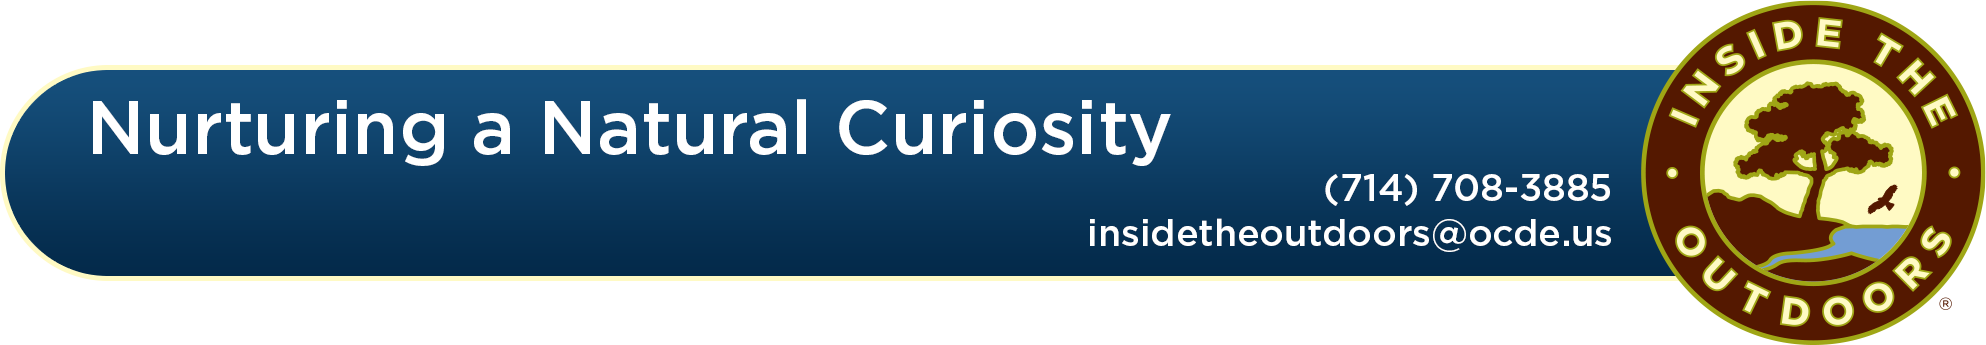 Nurturing a Natural Curiosity Inside the Outdoors logo with tree, bird, stream 714-708-3885 insidetheoutdoors@ocde.us